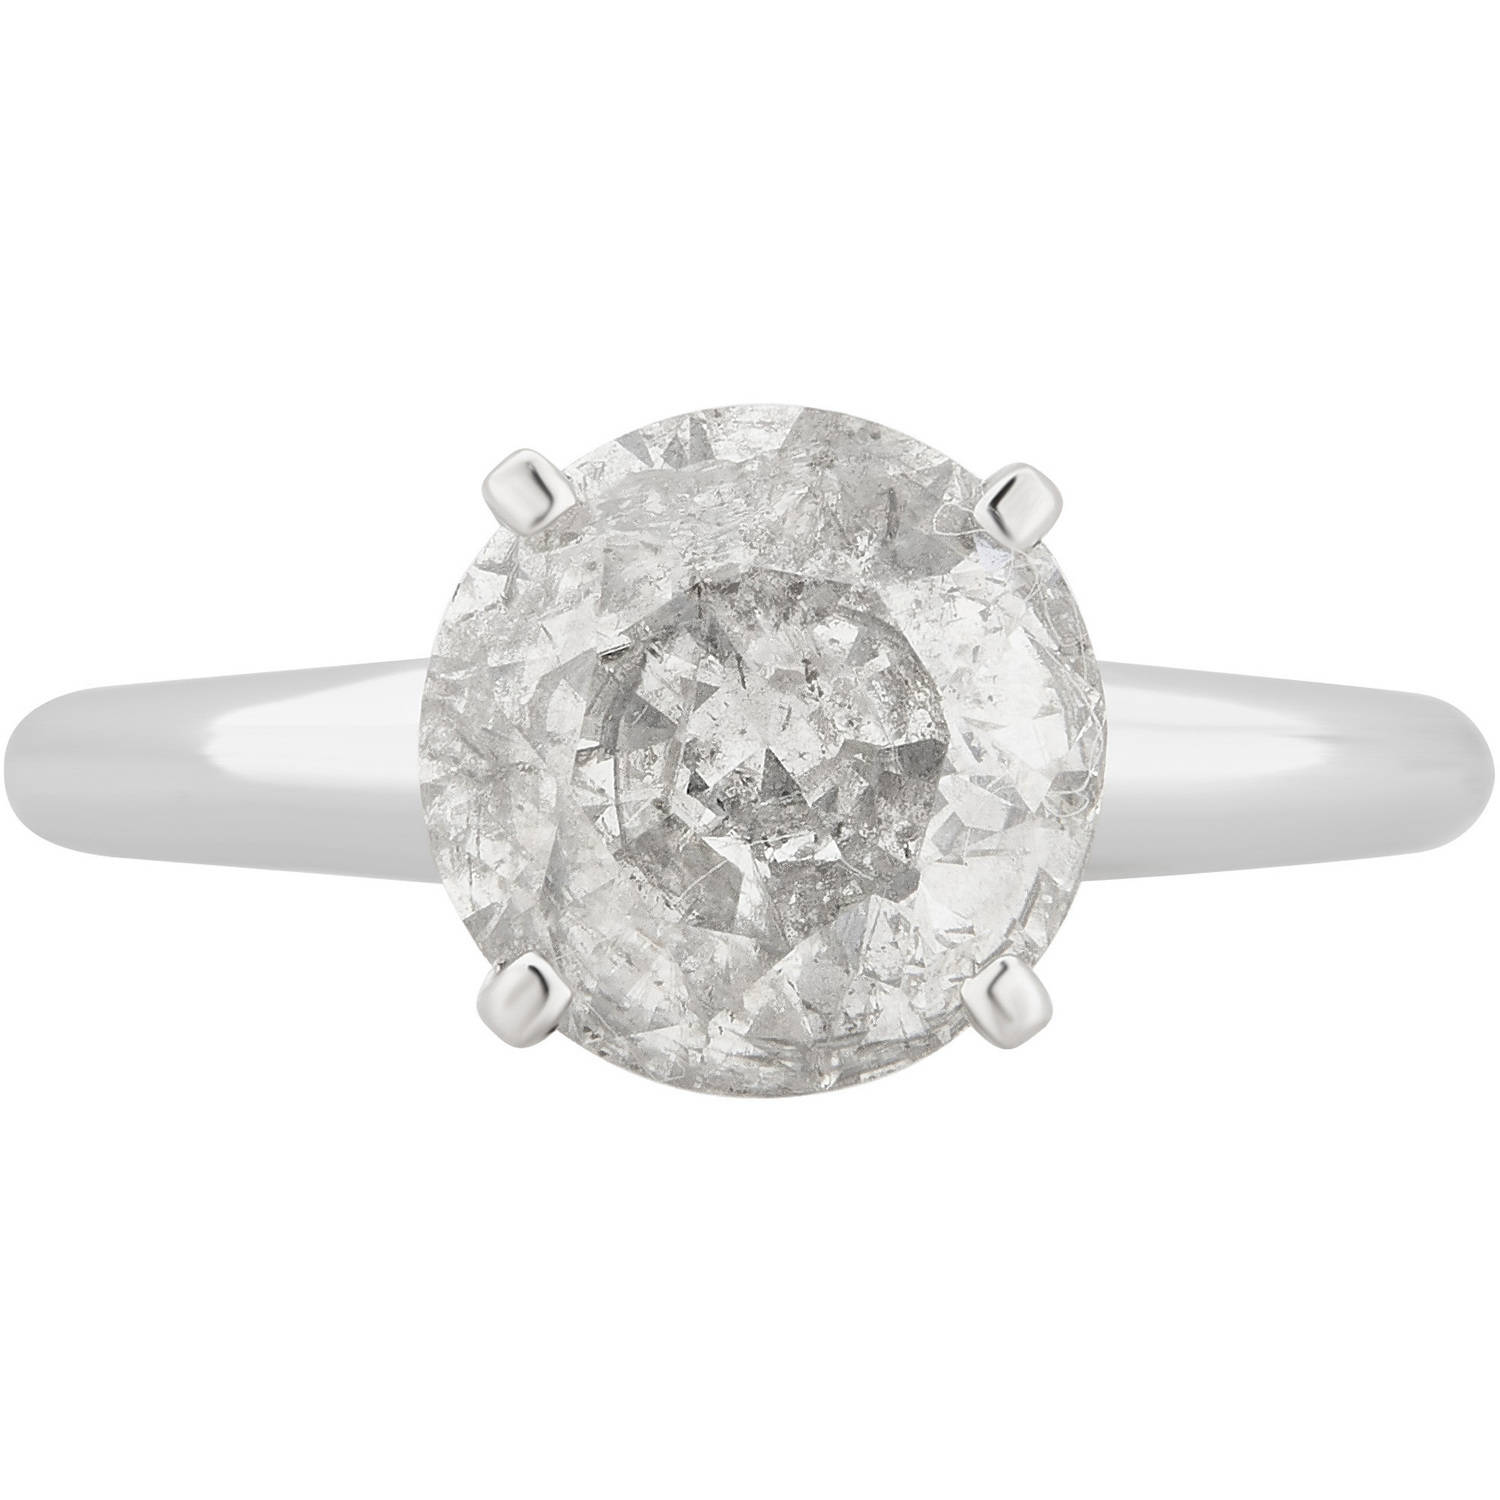 2 3 4 Carat T.W. 18kt White Gold Diamond Solitaire Engagement Ring Comes in a Box by Generic